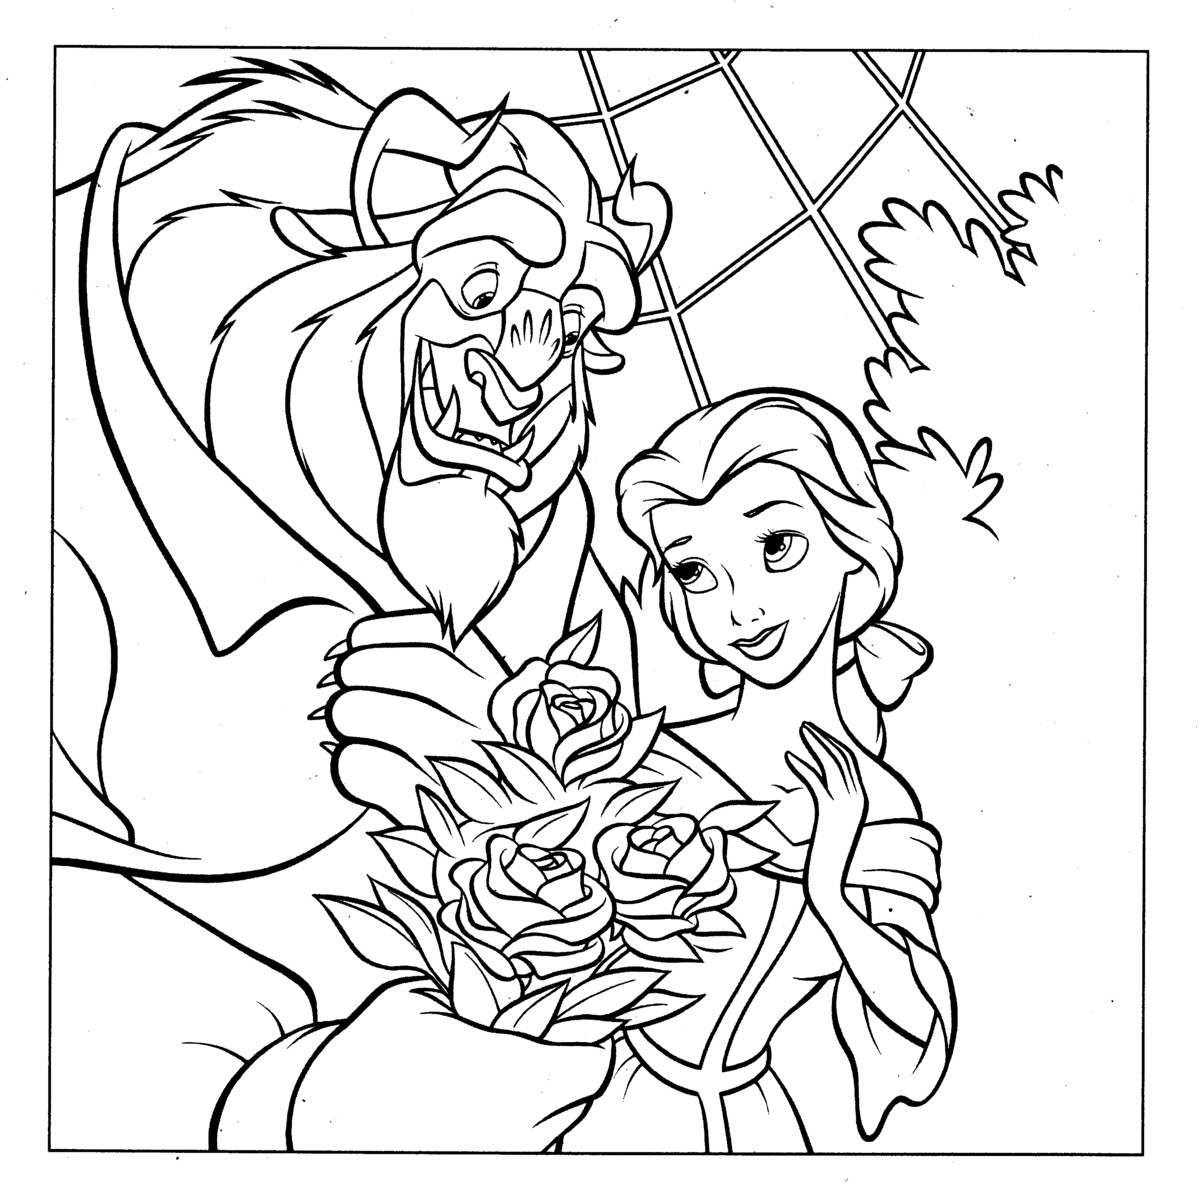 bella coloring pages disney princess belle coloring pages pages bella coloring